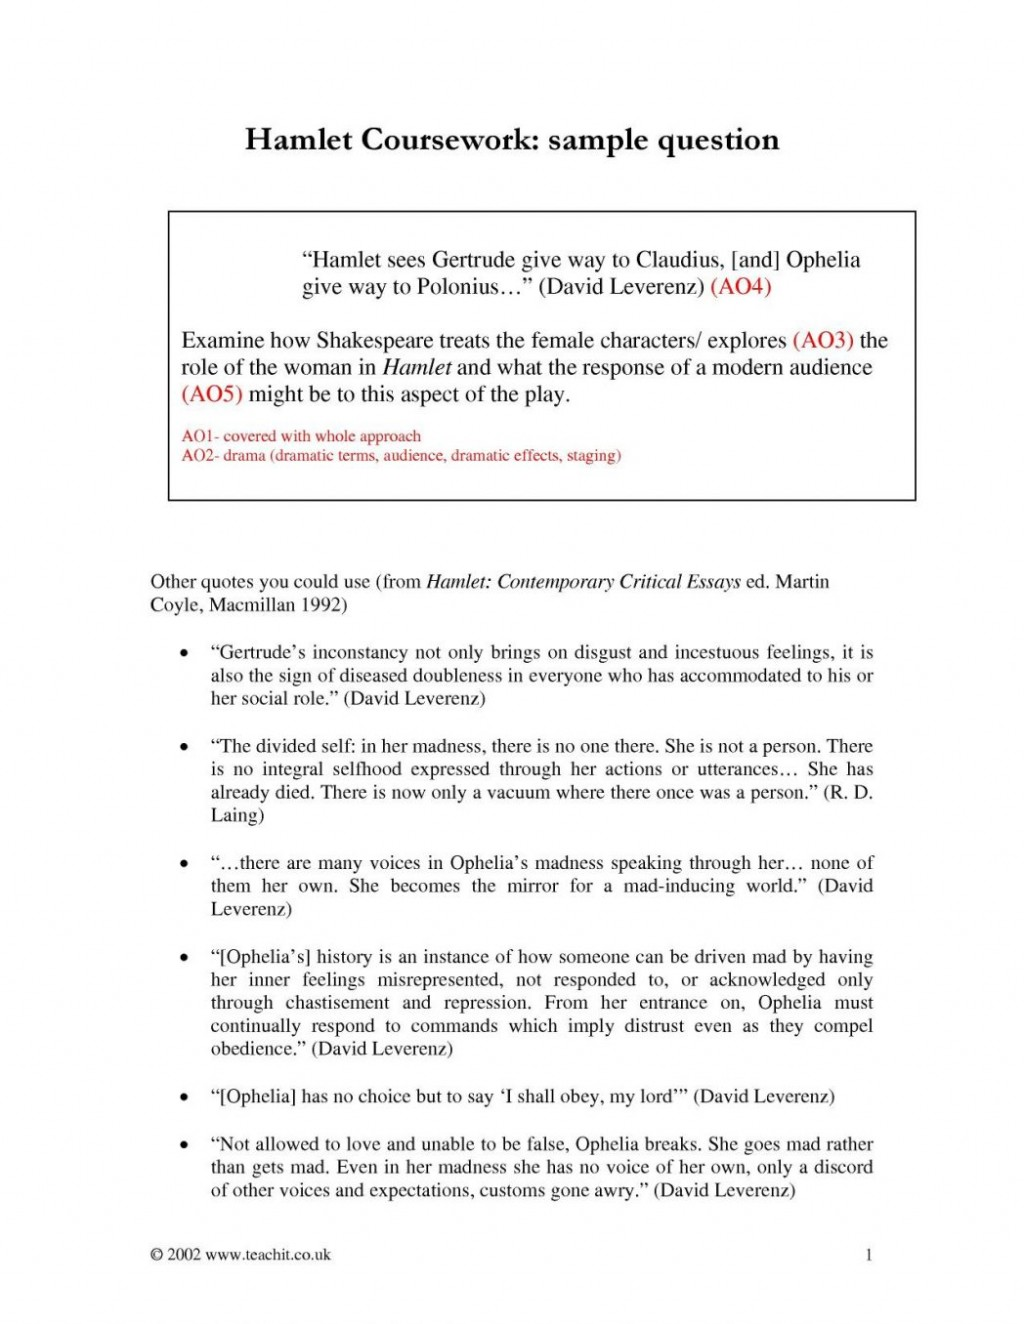 015 Revenge Essay Example Hamlet On Topics Outline Outstanding Frankenstein Prompt Tragedy Large